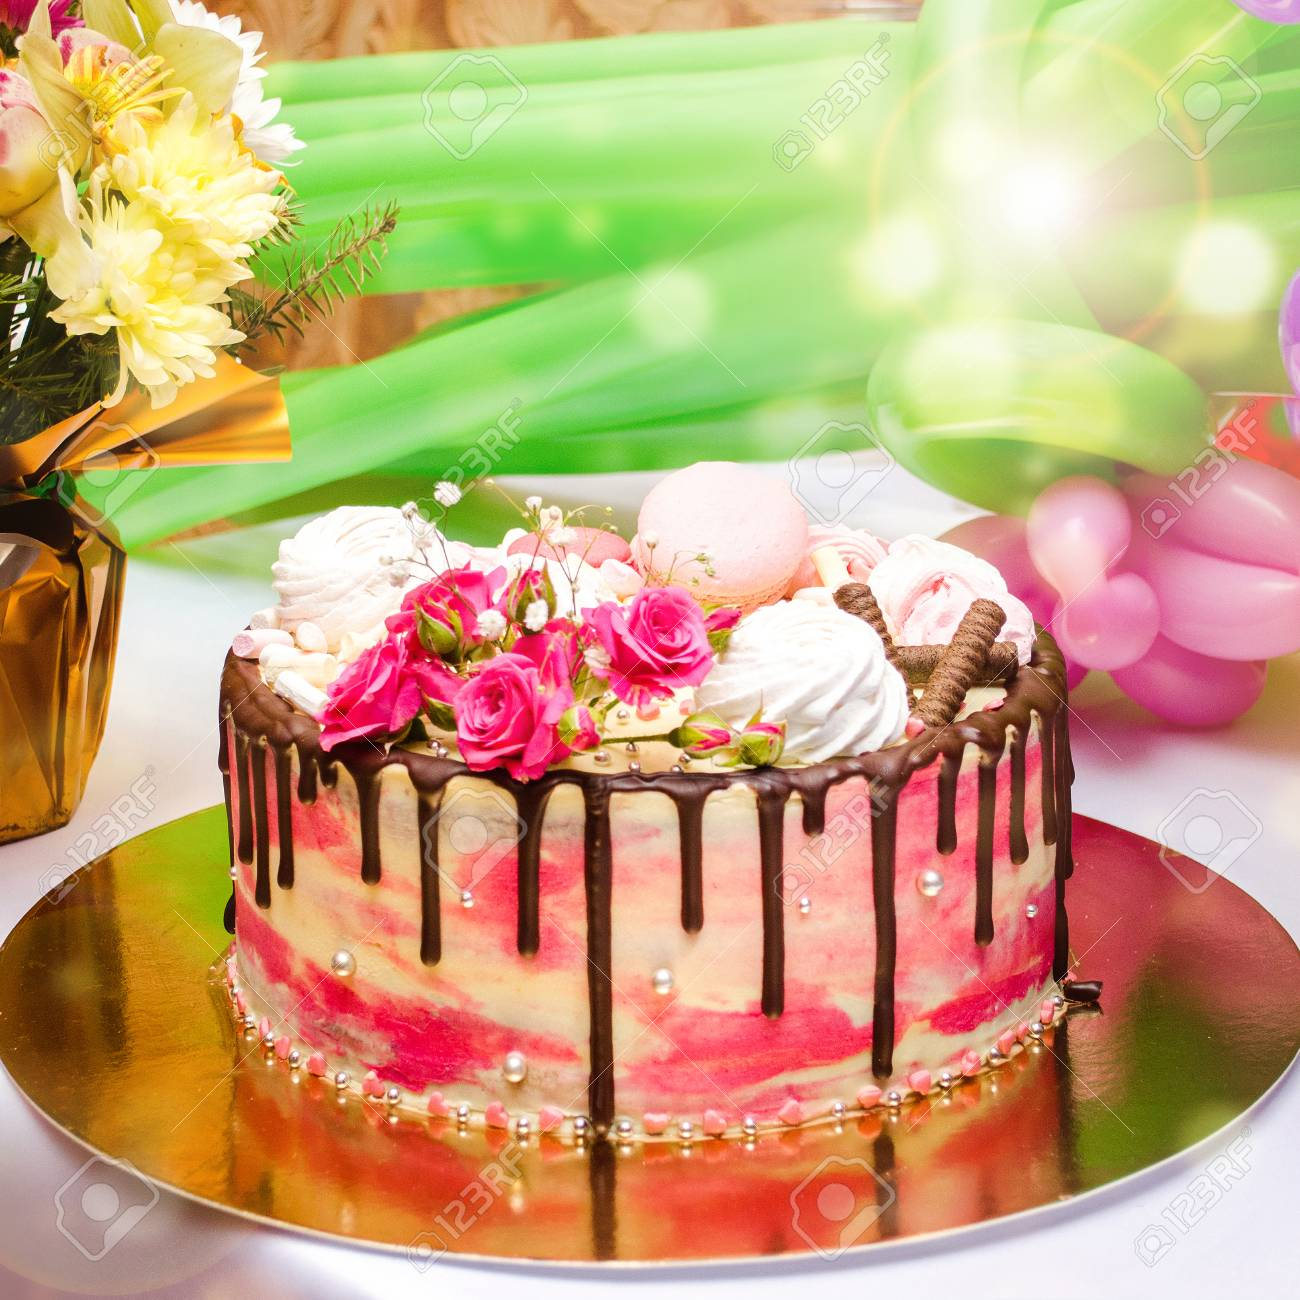 Birthday Cake On The Table Sweet Bright Background Stock Photo